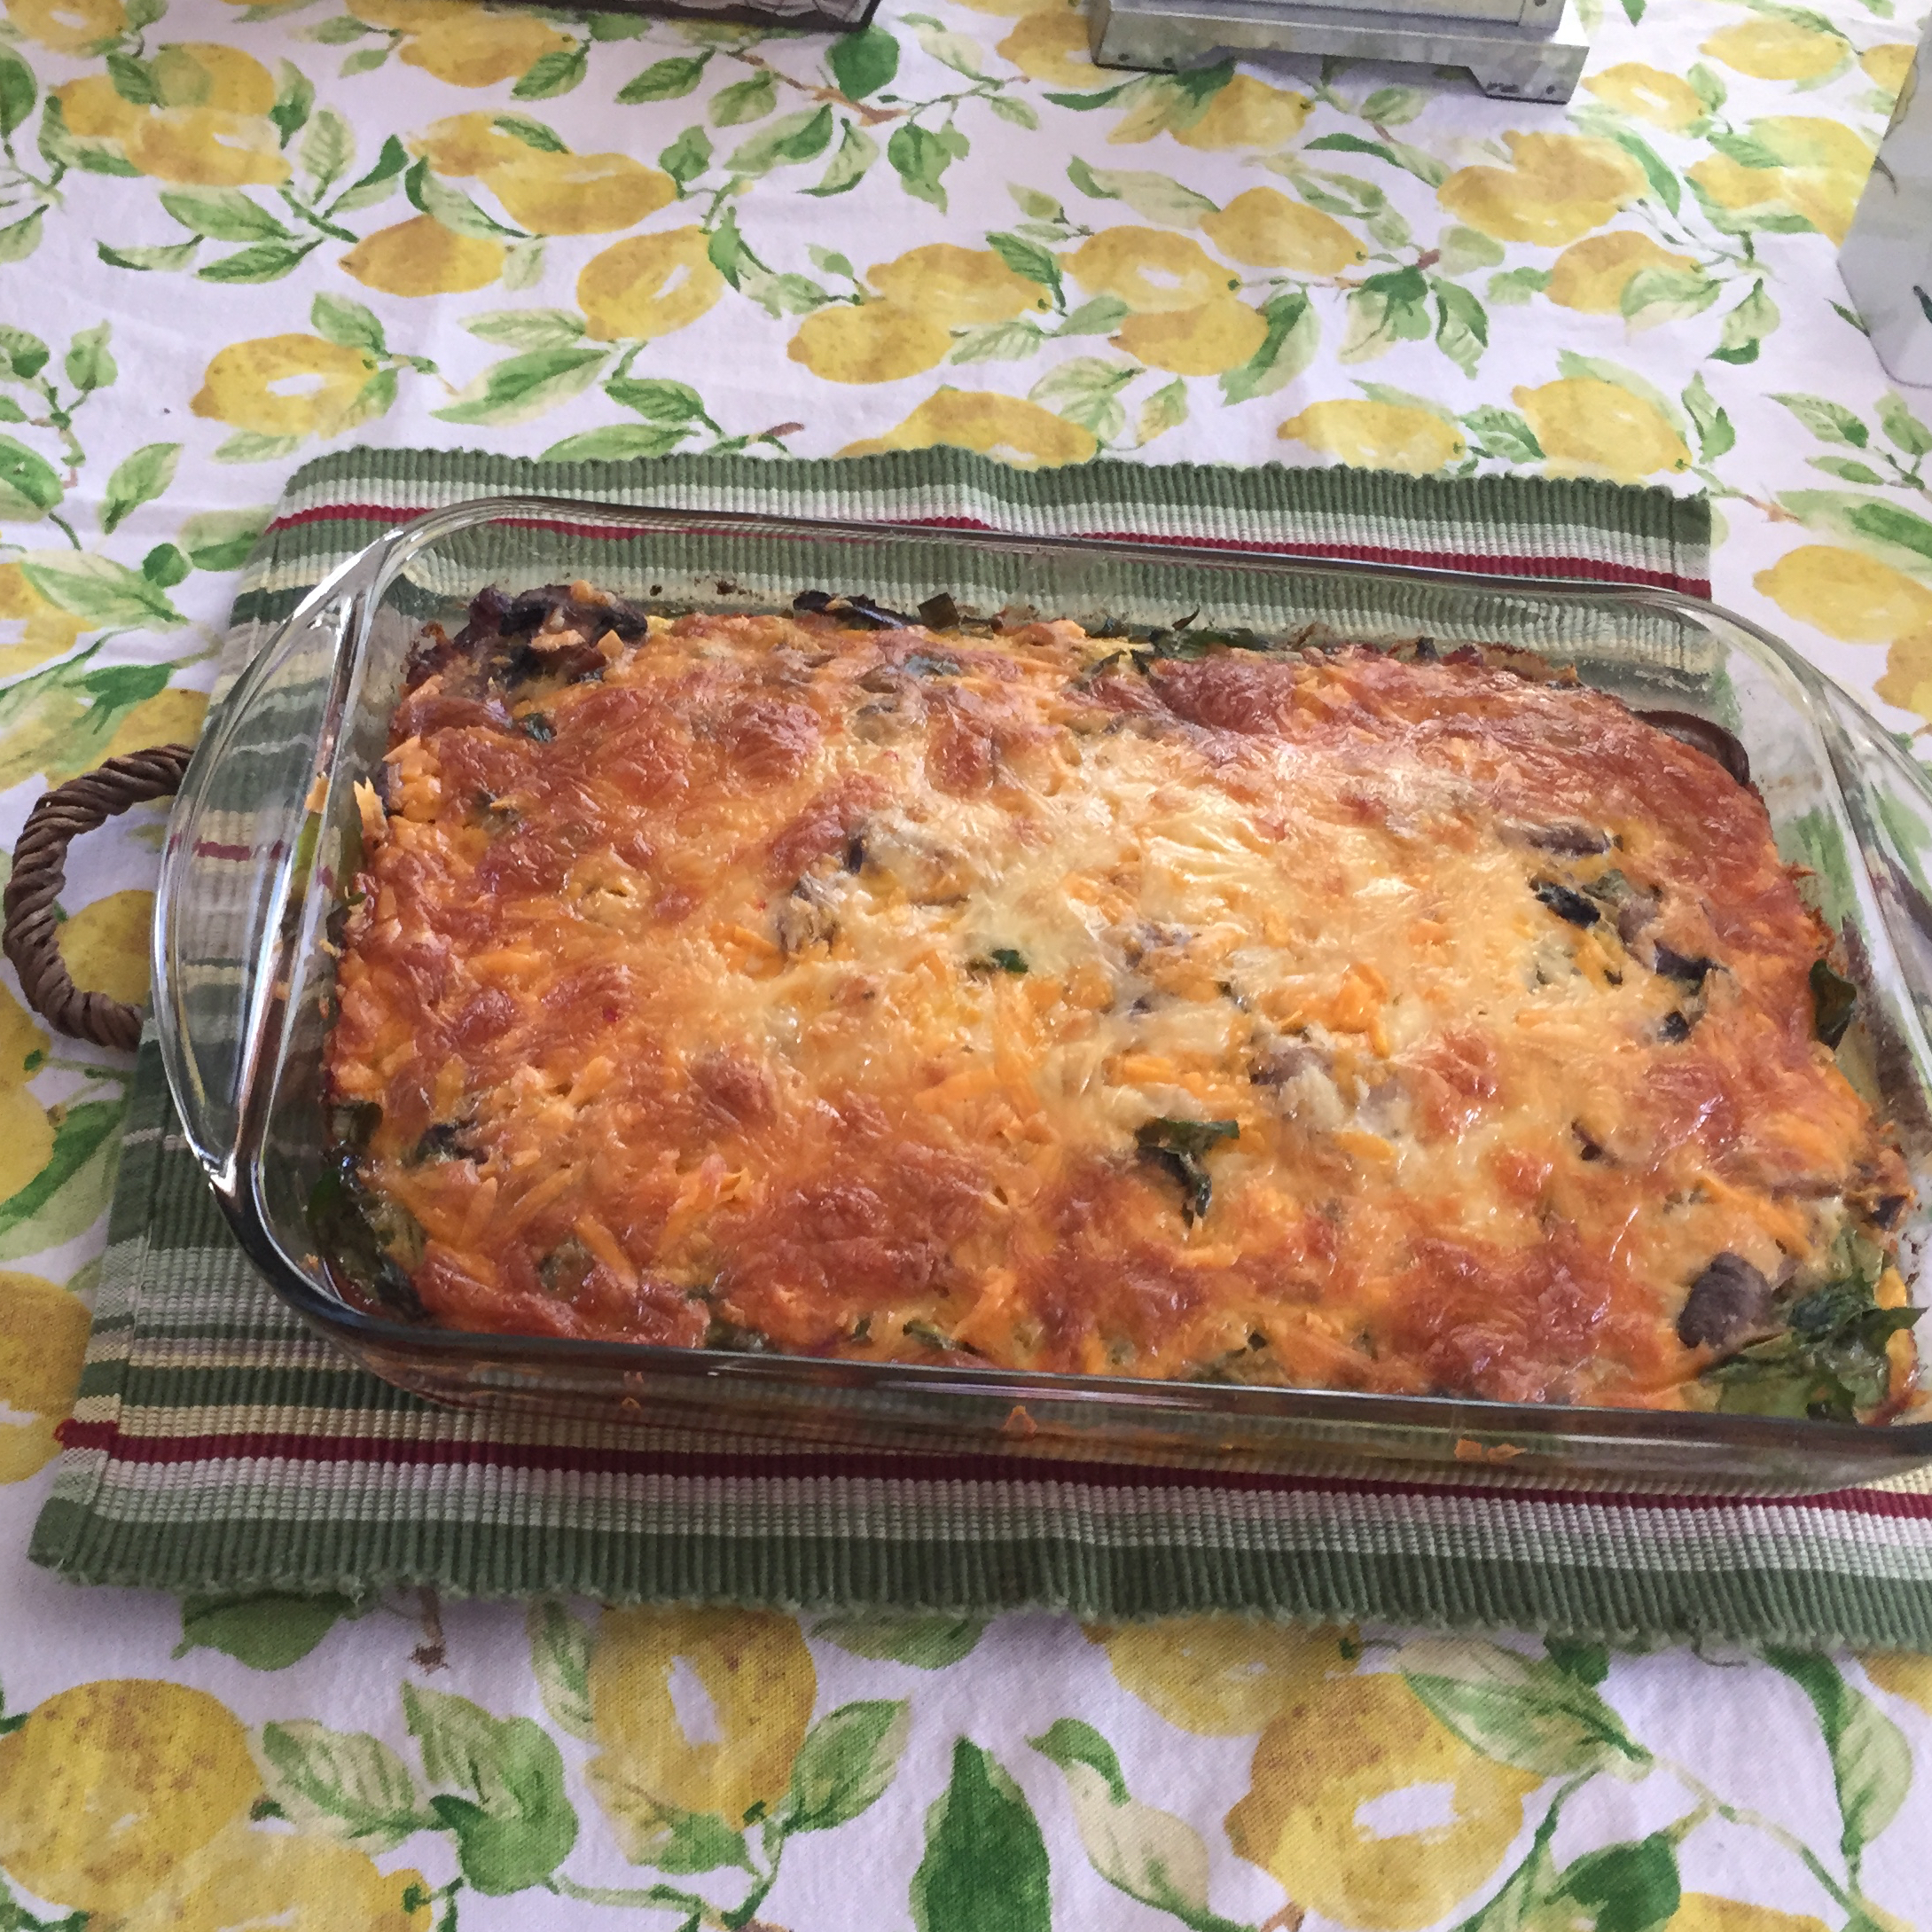 Cindy's Breakfast Casserole